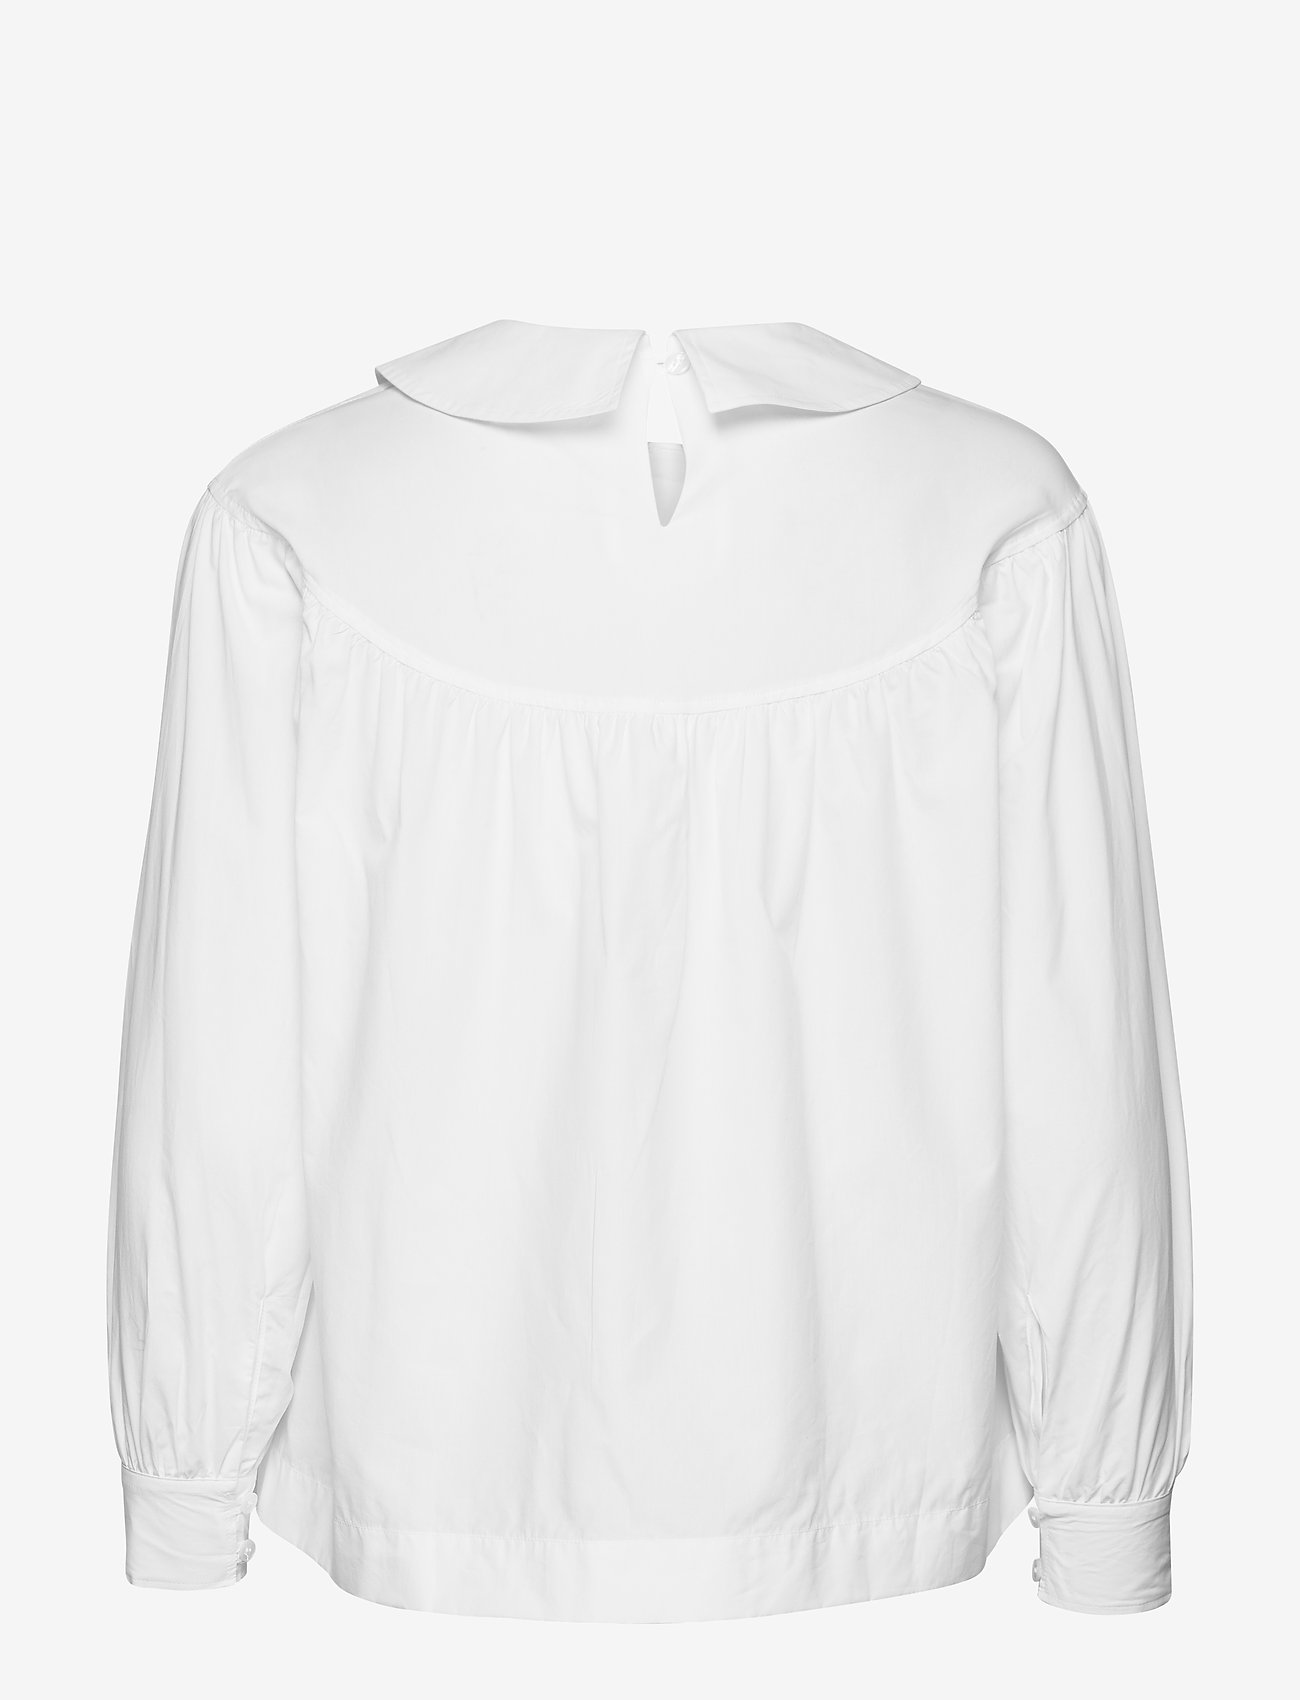 Maia Top (Bright White) - Wood Wood 4Oq7jA